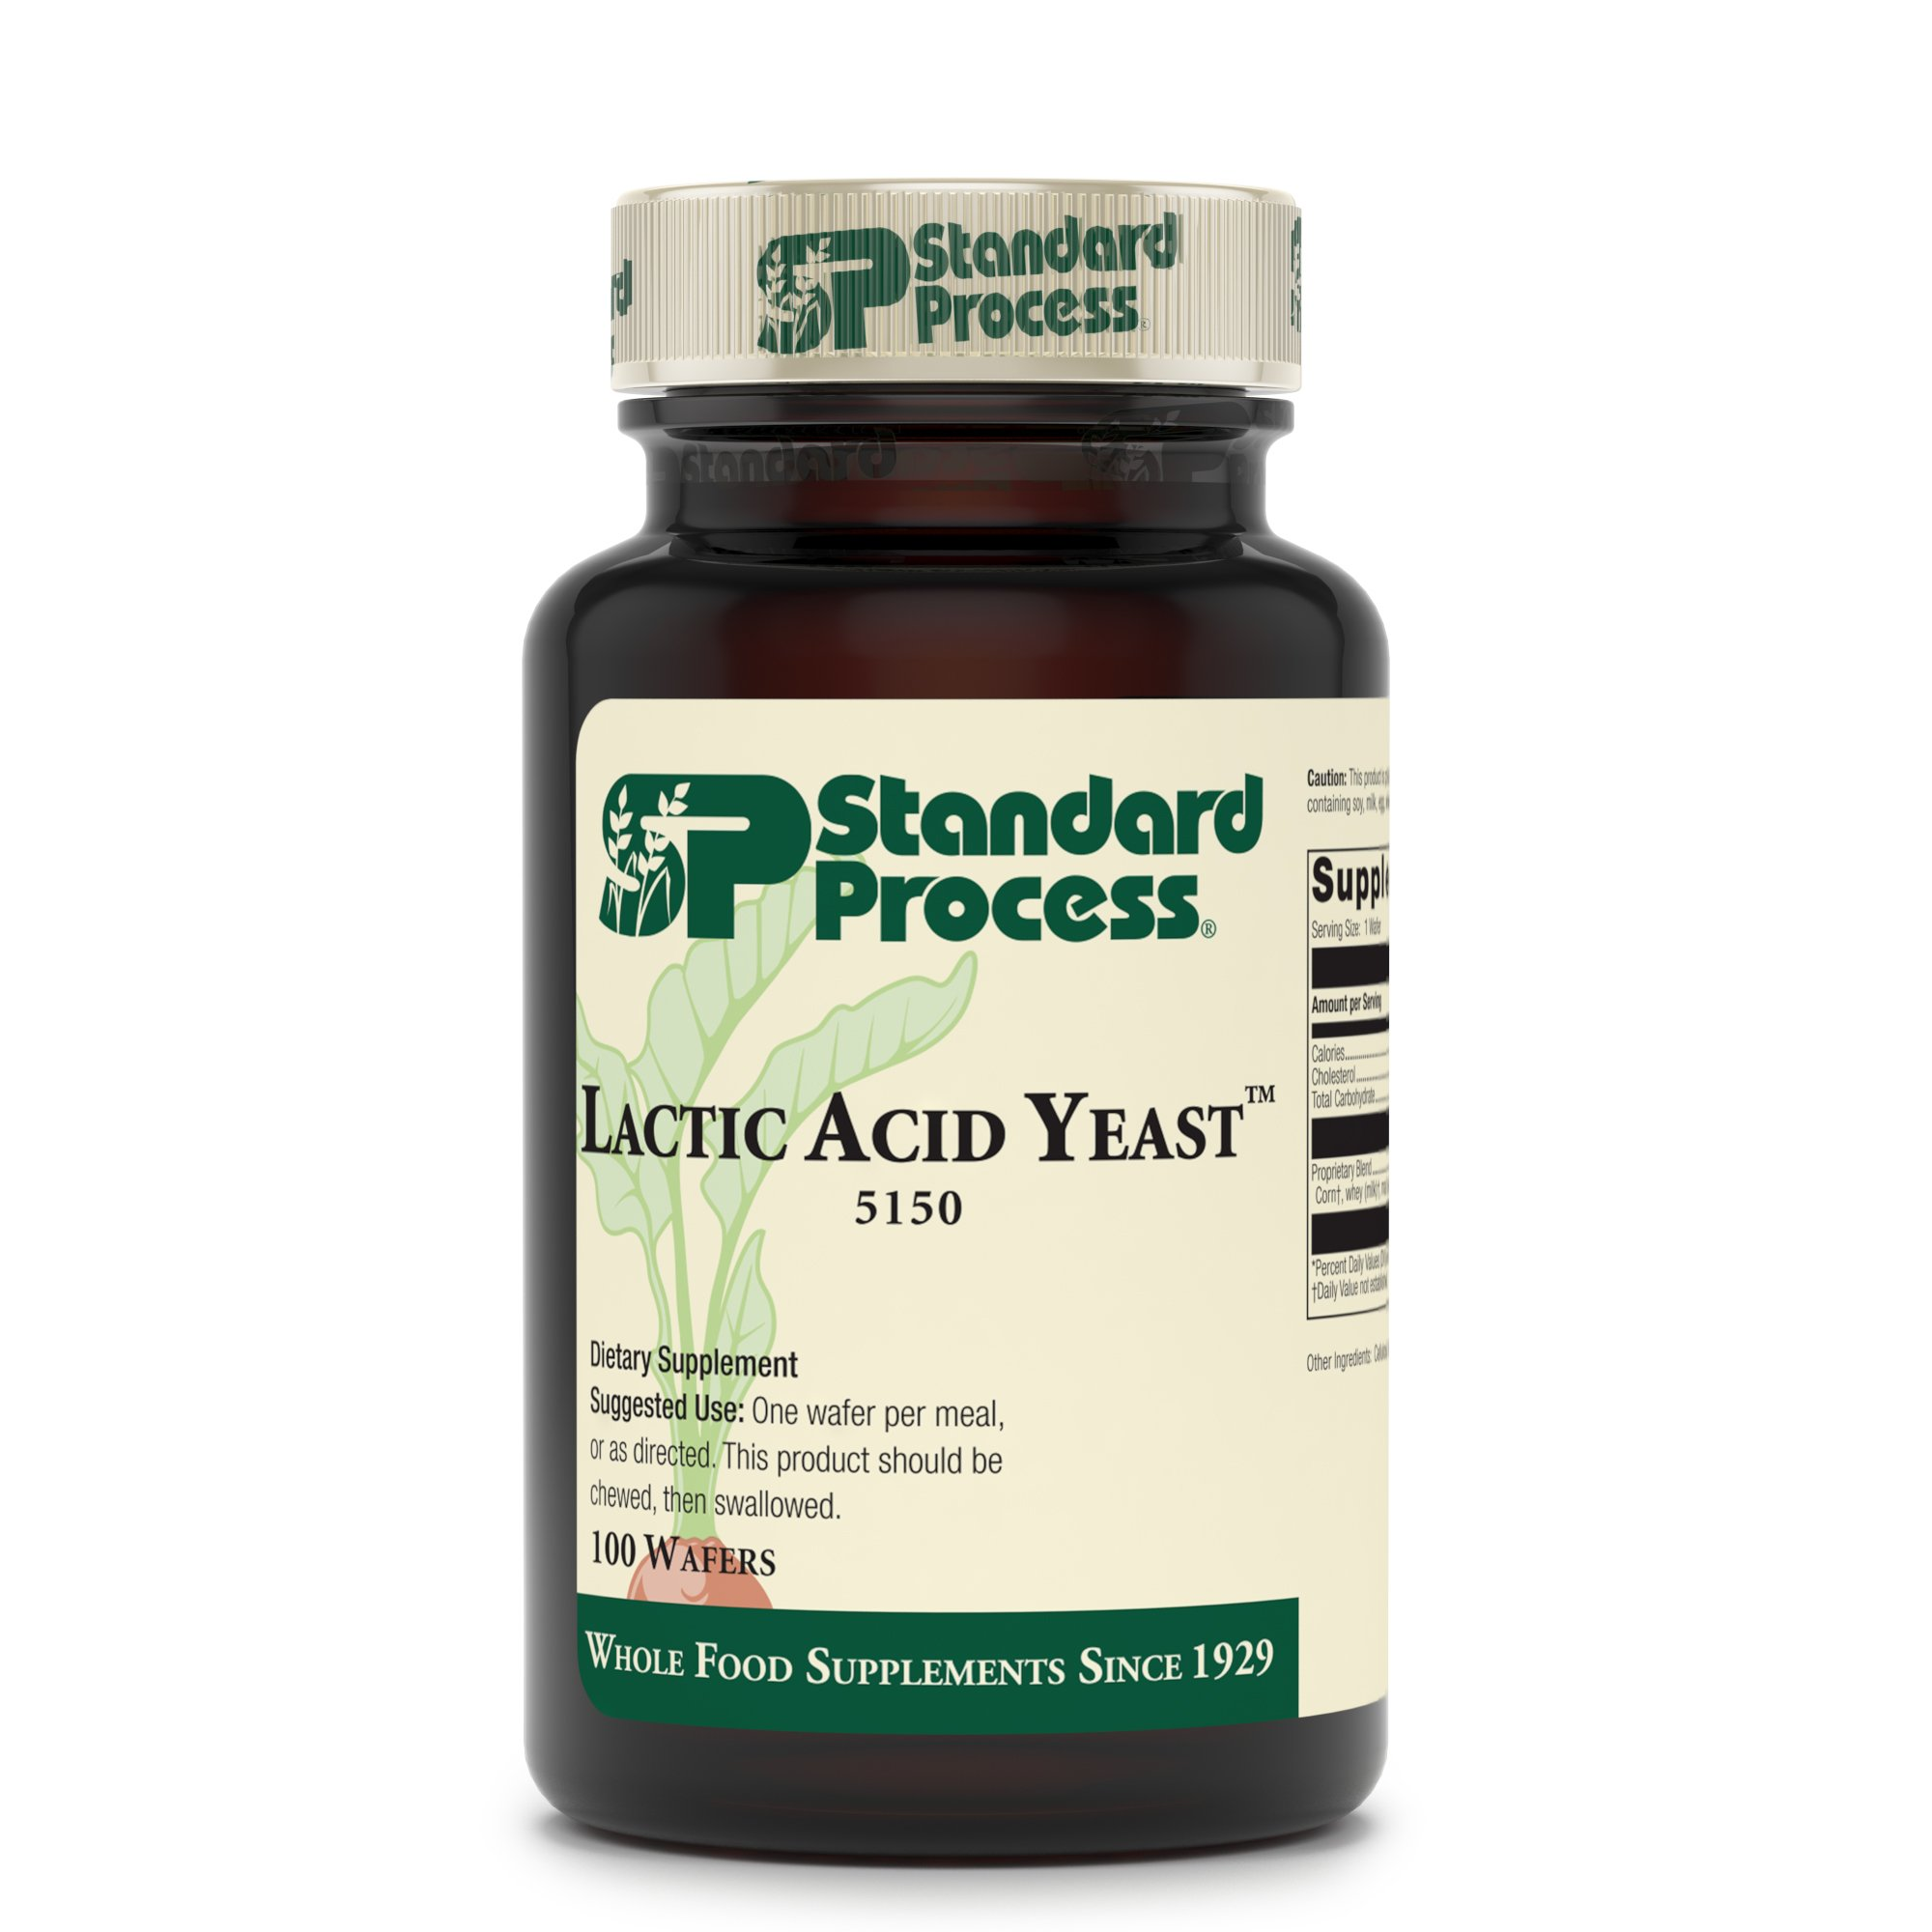 Standard Process Lactic Acid Yeast - Whole Food GI, Digestion and Digestive Health, Saccharomyces cerevisiae - 100 Wafers